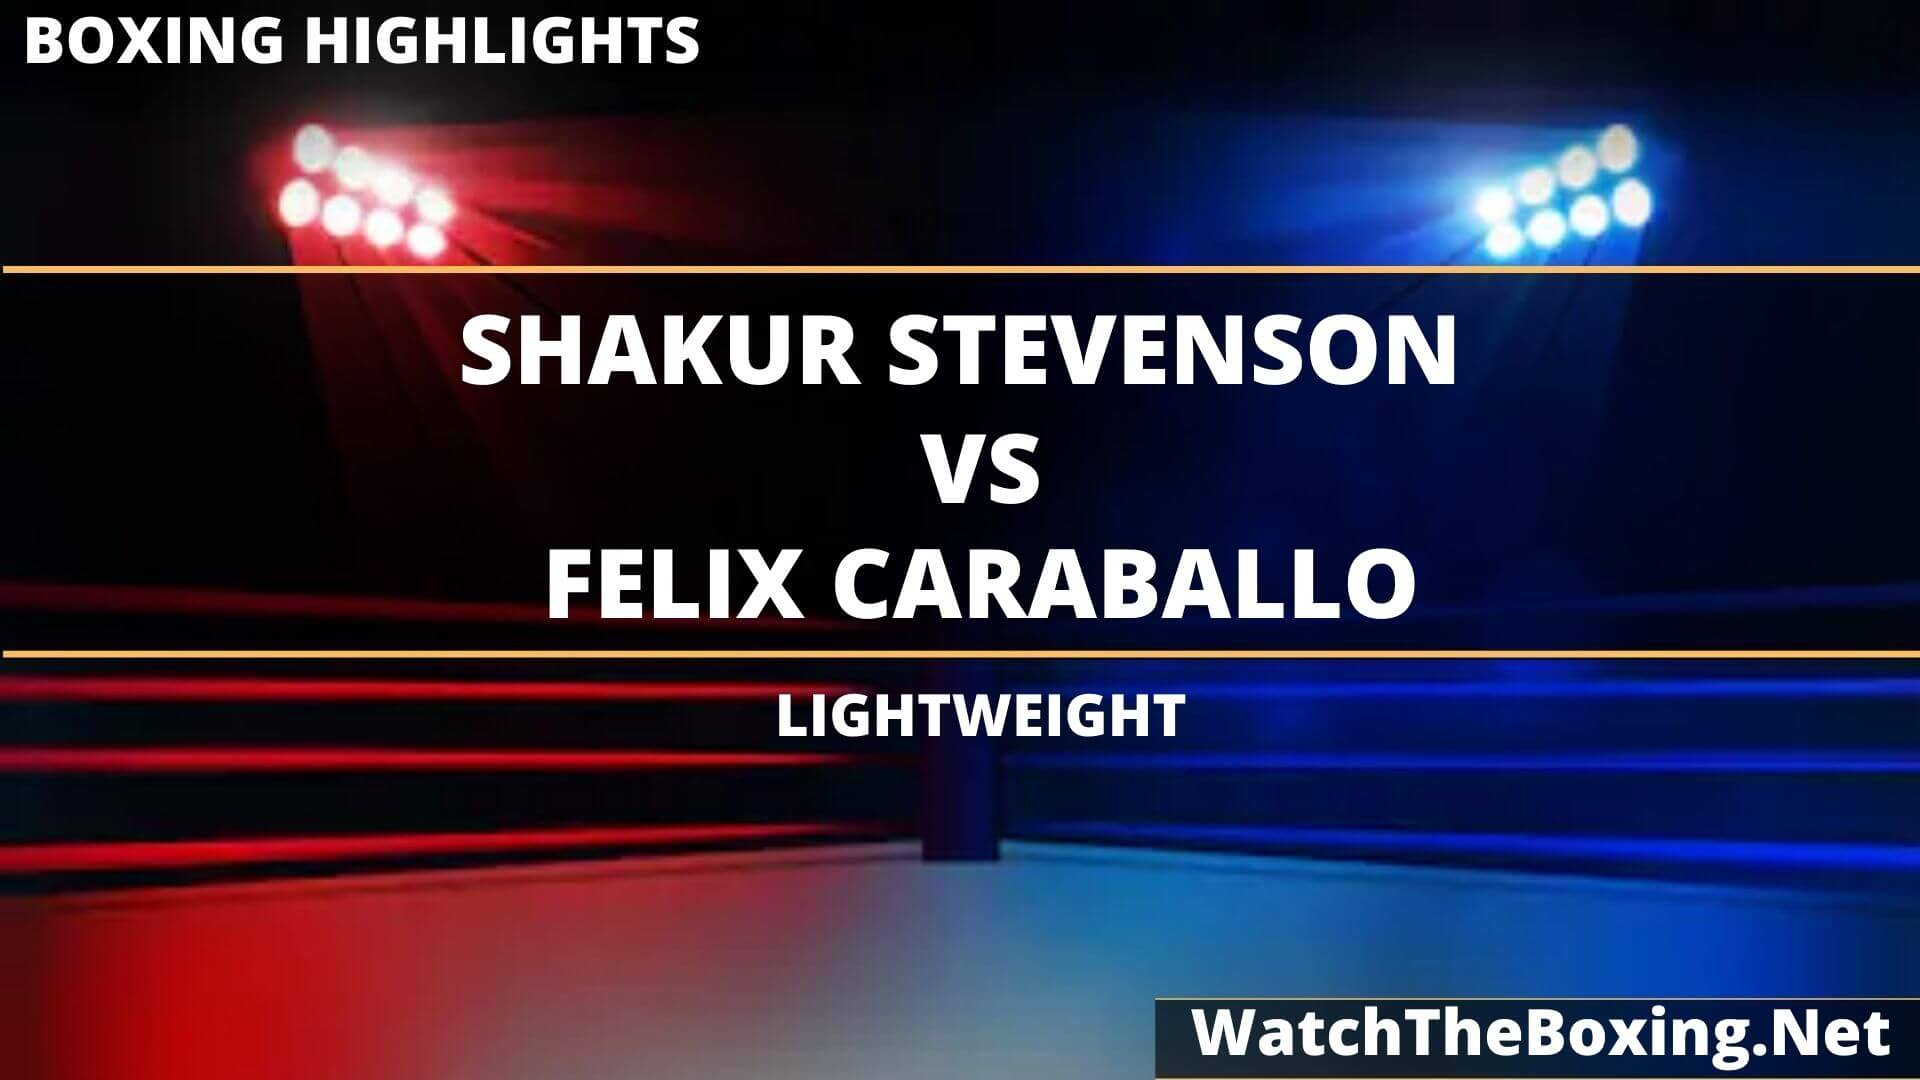 Shakur Stevenson Vs Felix Caraballo Highlights 2020 Lightweight